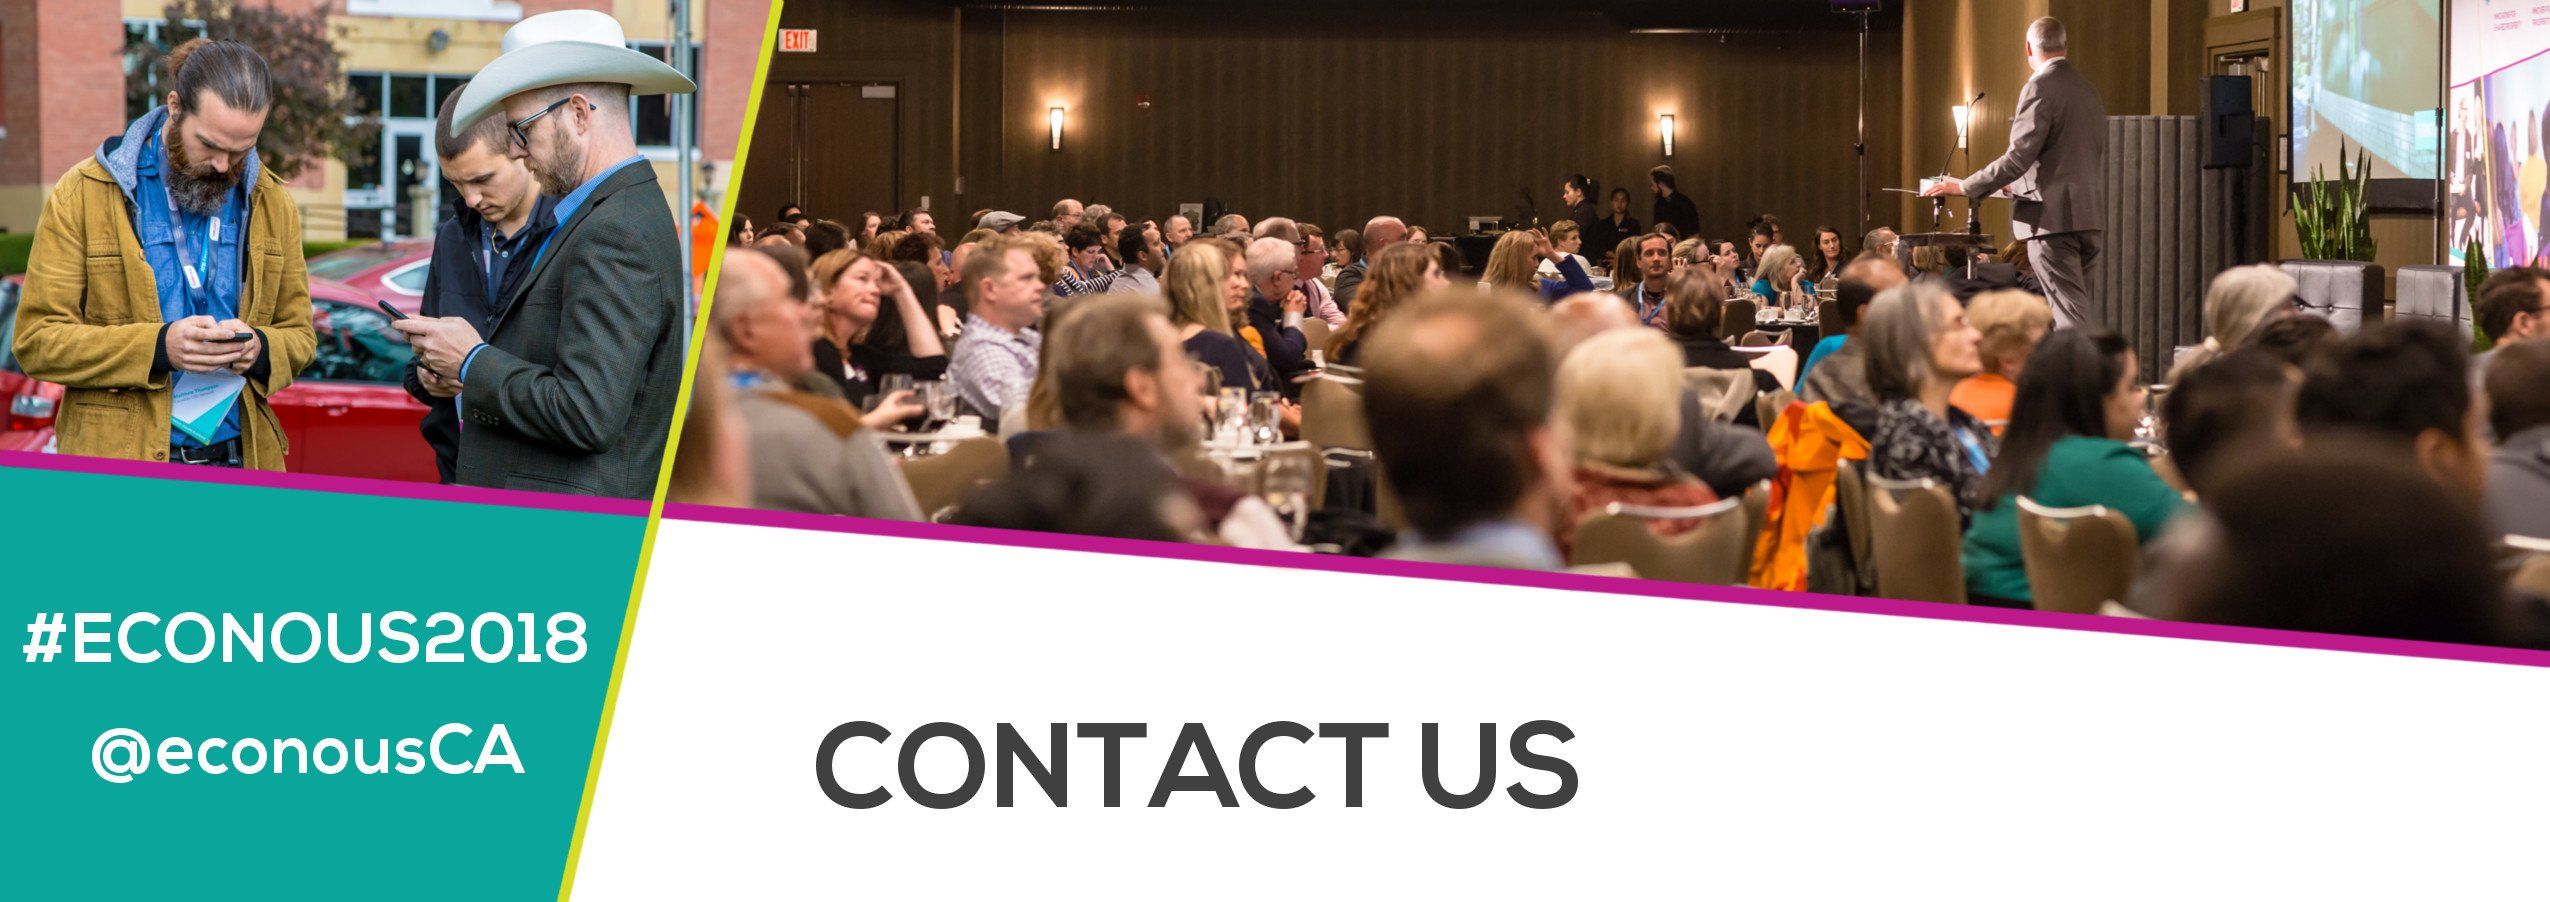 EconoUs2017: Contact us